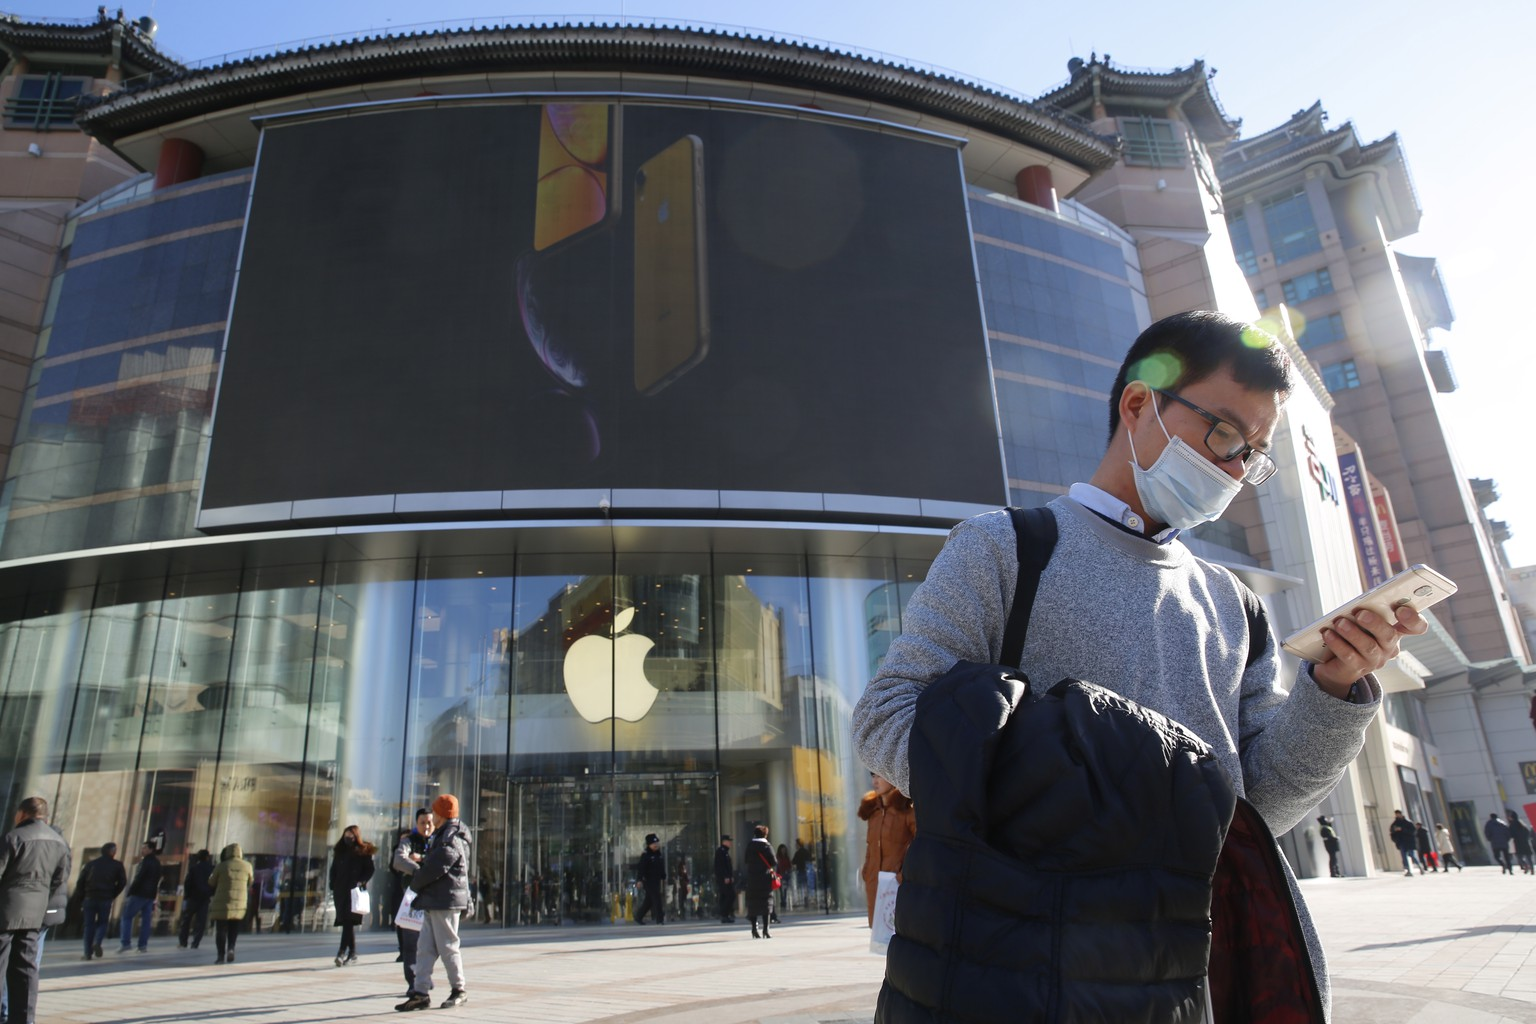 epa07259019 (FILE) - A Chinese man uses his mobile phone outside an Apple store while an iPhone XR picture is displayed on a large screen in Beijing, China, 12 December 2018 (reissued 03 January 2019). Apple annouced its predicted revenue for three months to 29 December 2018 this week, noting nearly a five percent decline on the same time the previous year.  EPA/WU HONG